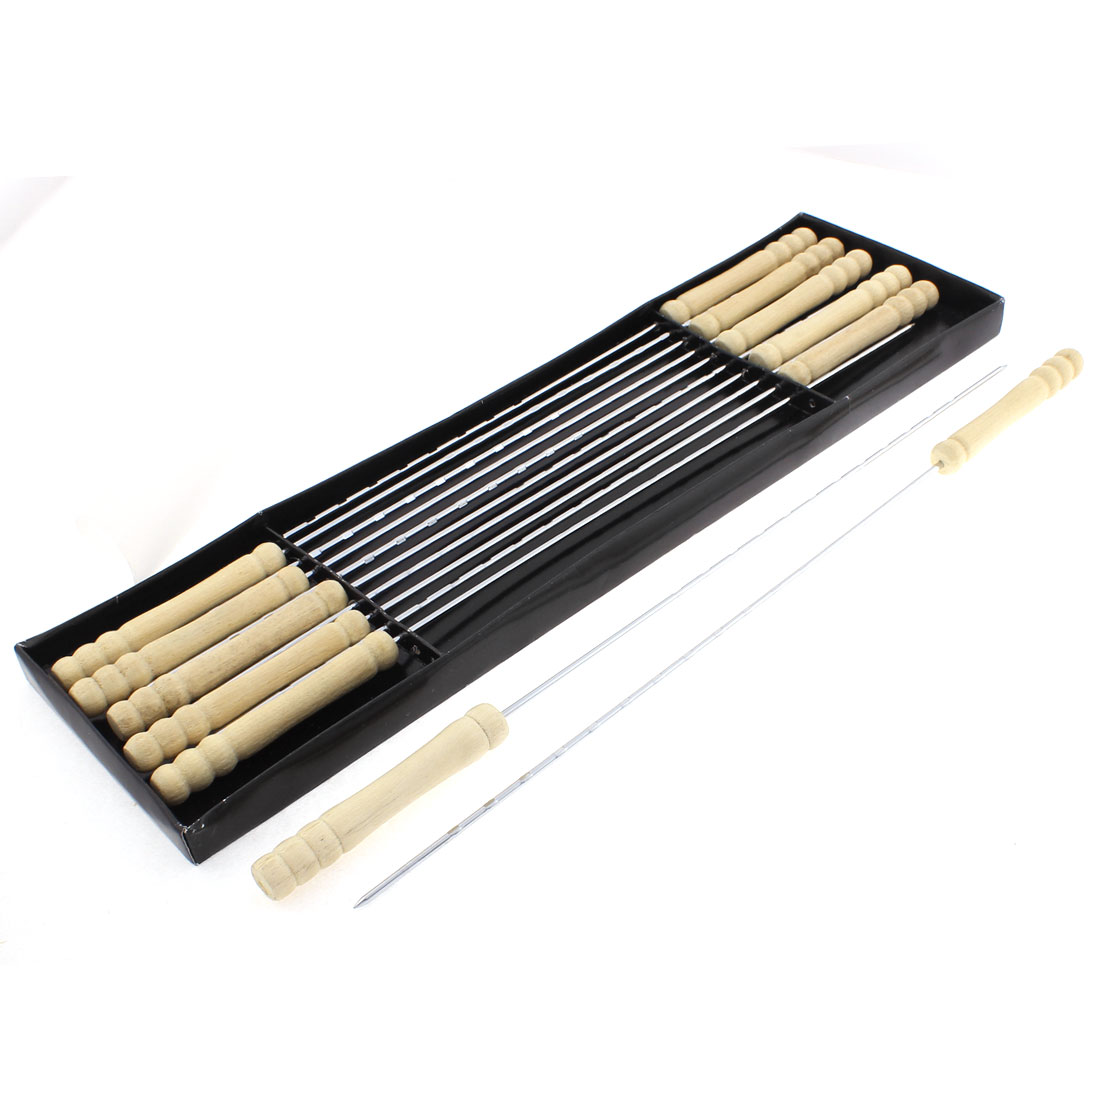 Outdoor Wooden Handle Metal Shaft BBQ Skewers Barbecue Tool Stick 12 Pcs